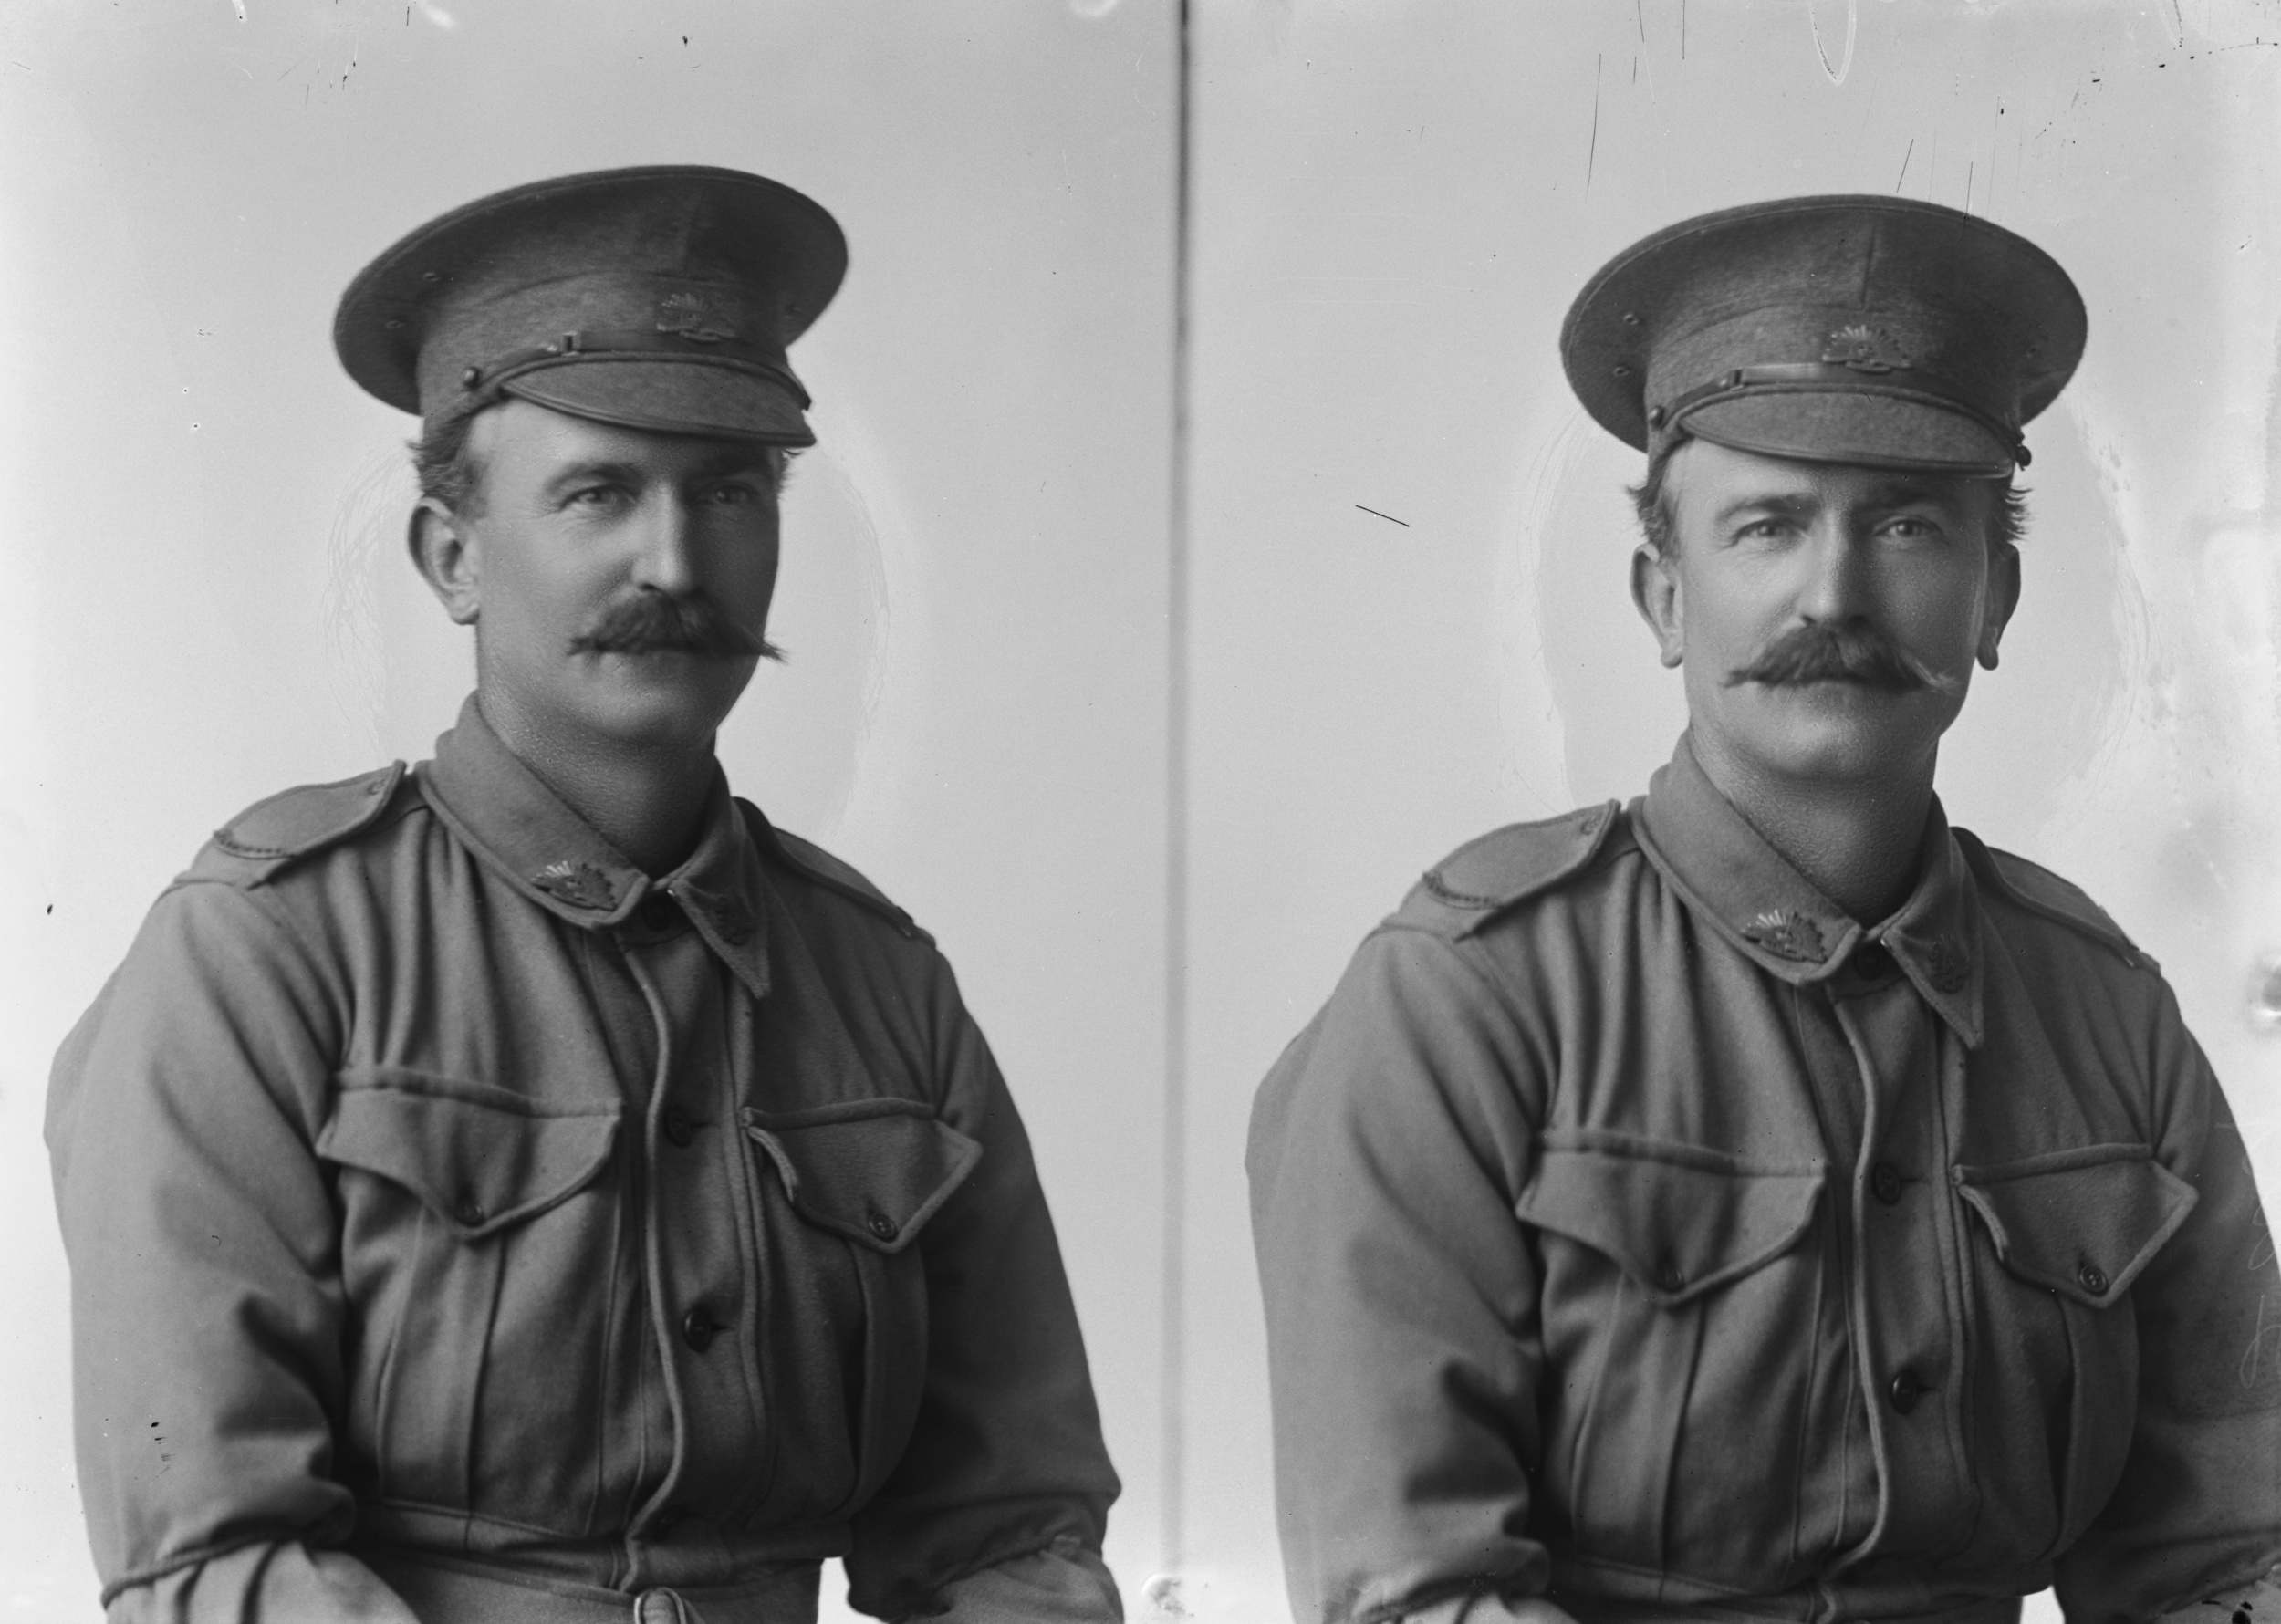 Photographed at the Dease Studio, 117 Barrack Street Perth WA Image courtesy of the State Library of Western Australia: 108425PD